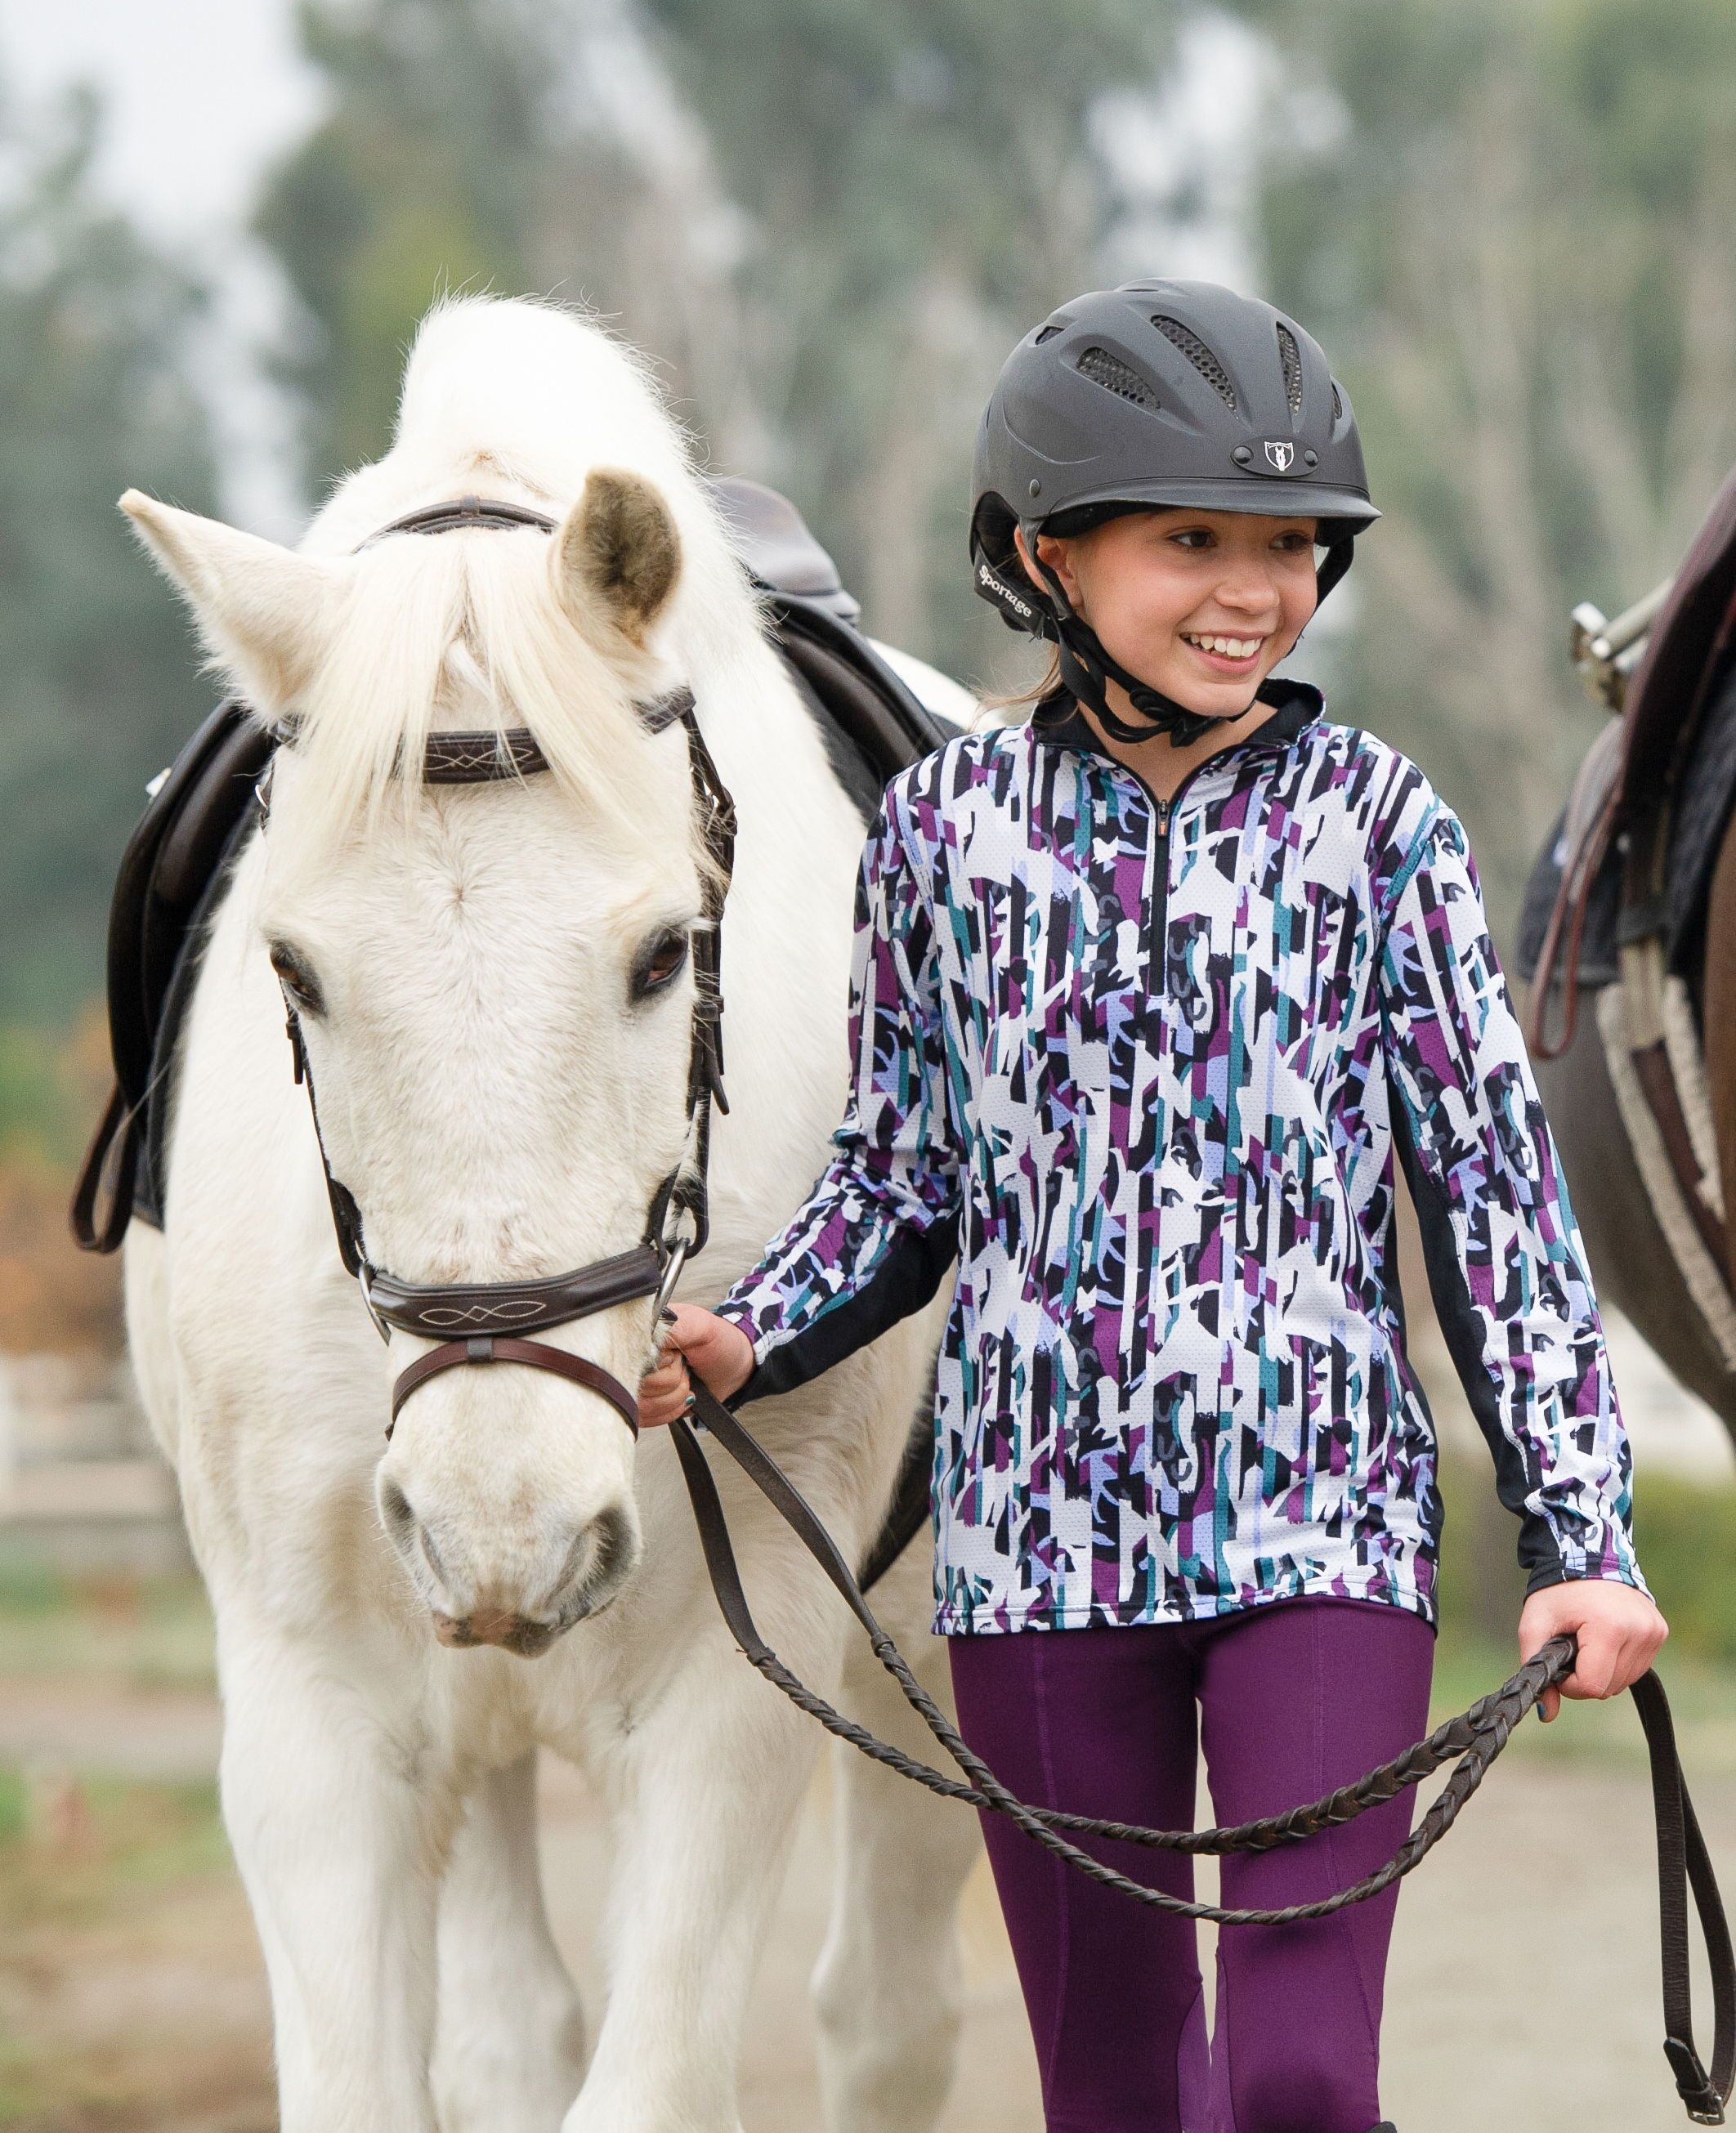 Kids Long Sleeve Riding Shirts Riding Shirts Winter Riding Outfits Equestrian Outfits